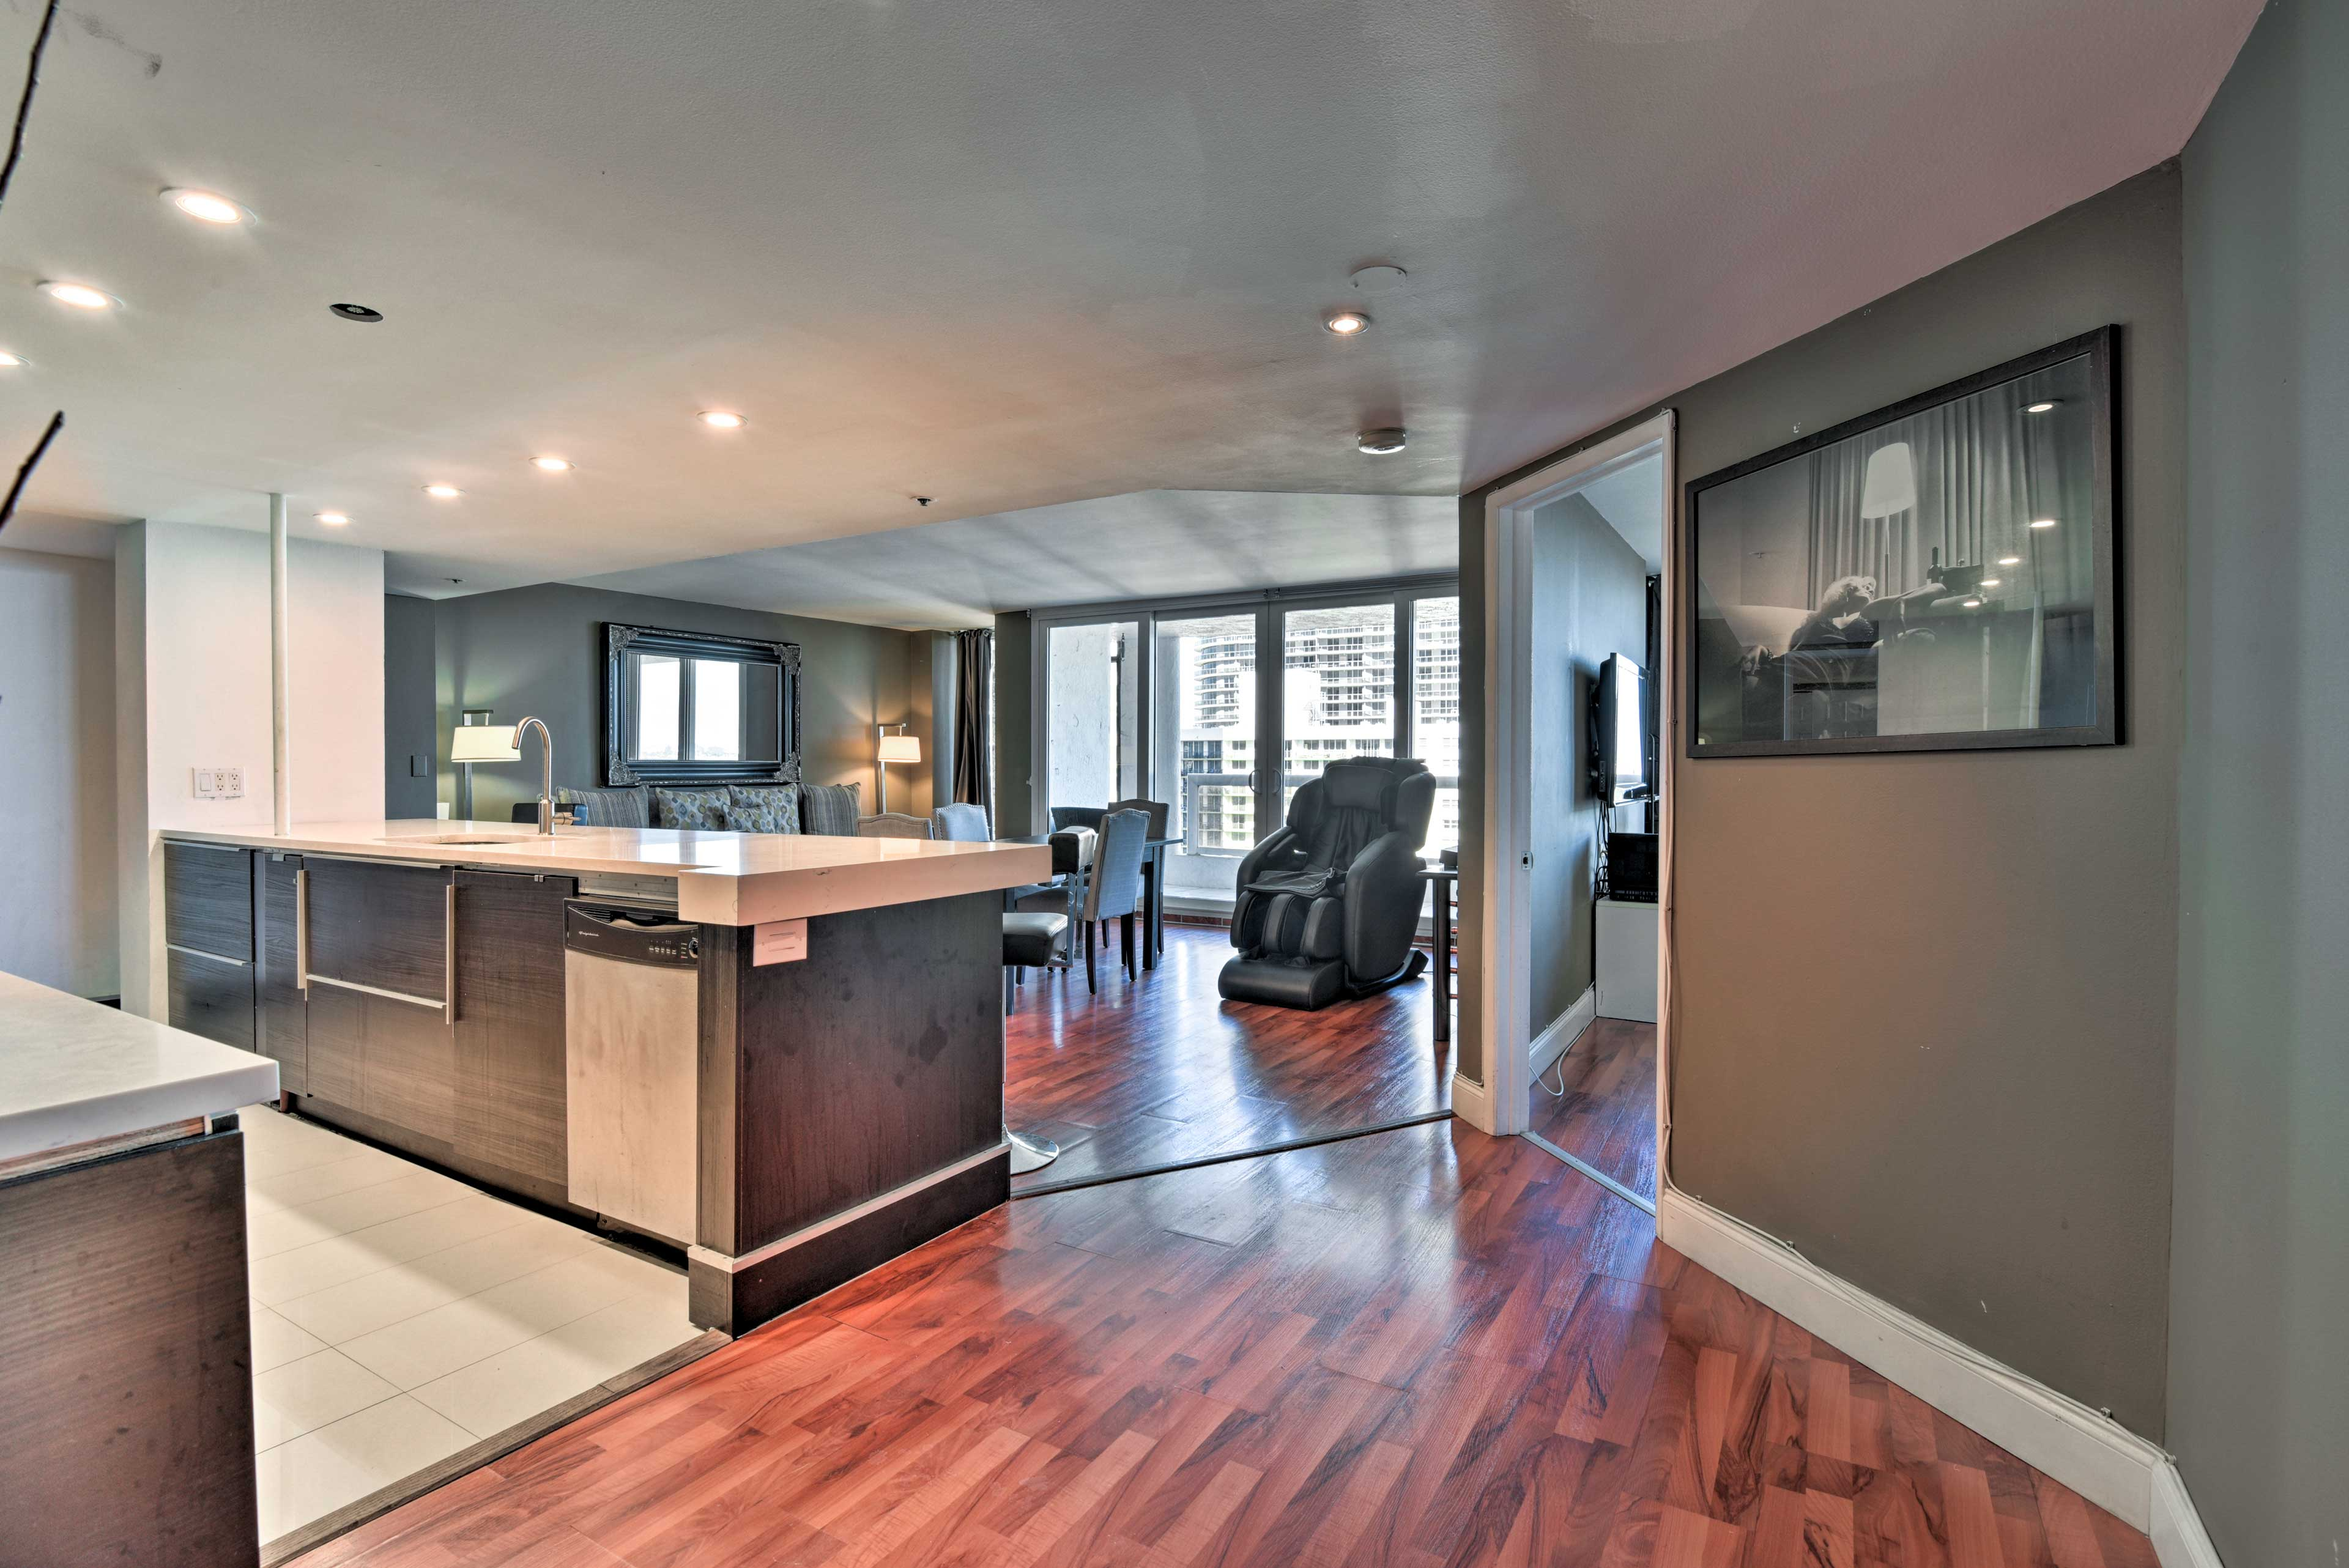 This top-notch property has floor-to-ceiling windows for ample natural sunlight.